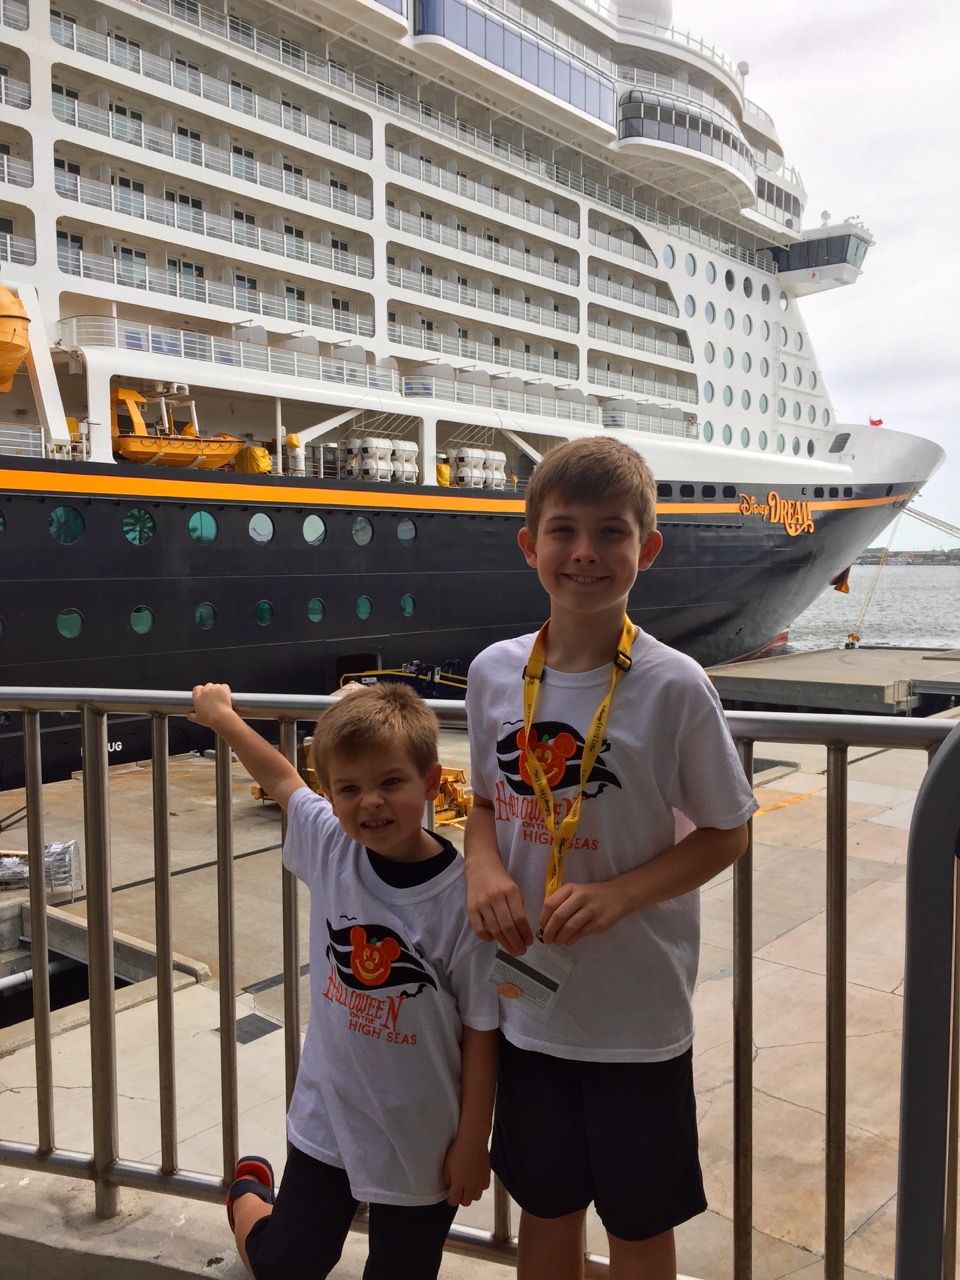 Posing at the DIsney Cruise Line Port in front of the DIsney Dream